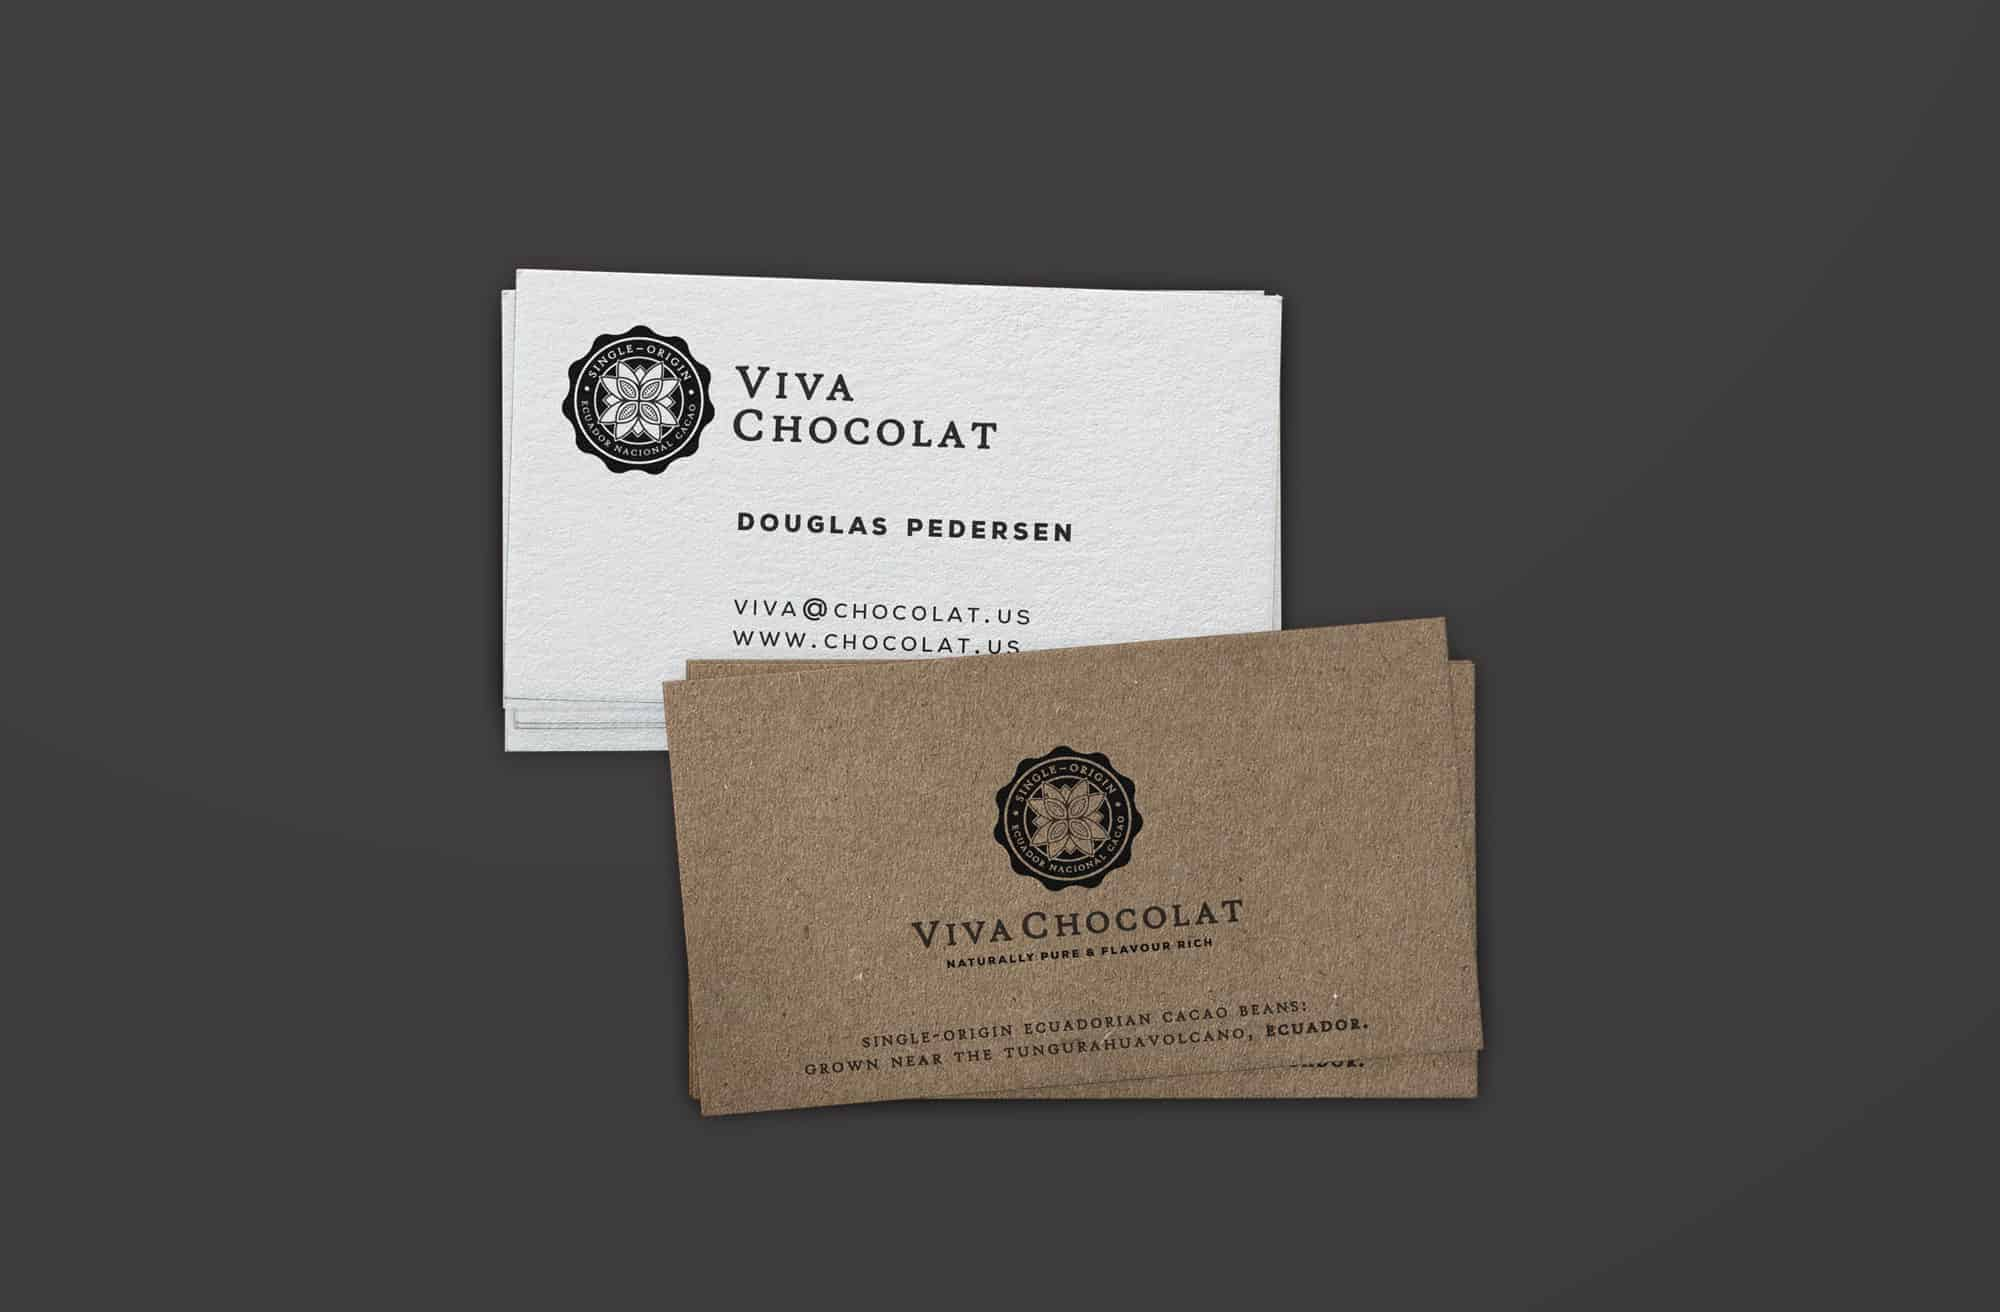 Viva Chocolat Logo & Brand Identity Designed by The Logo Smith